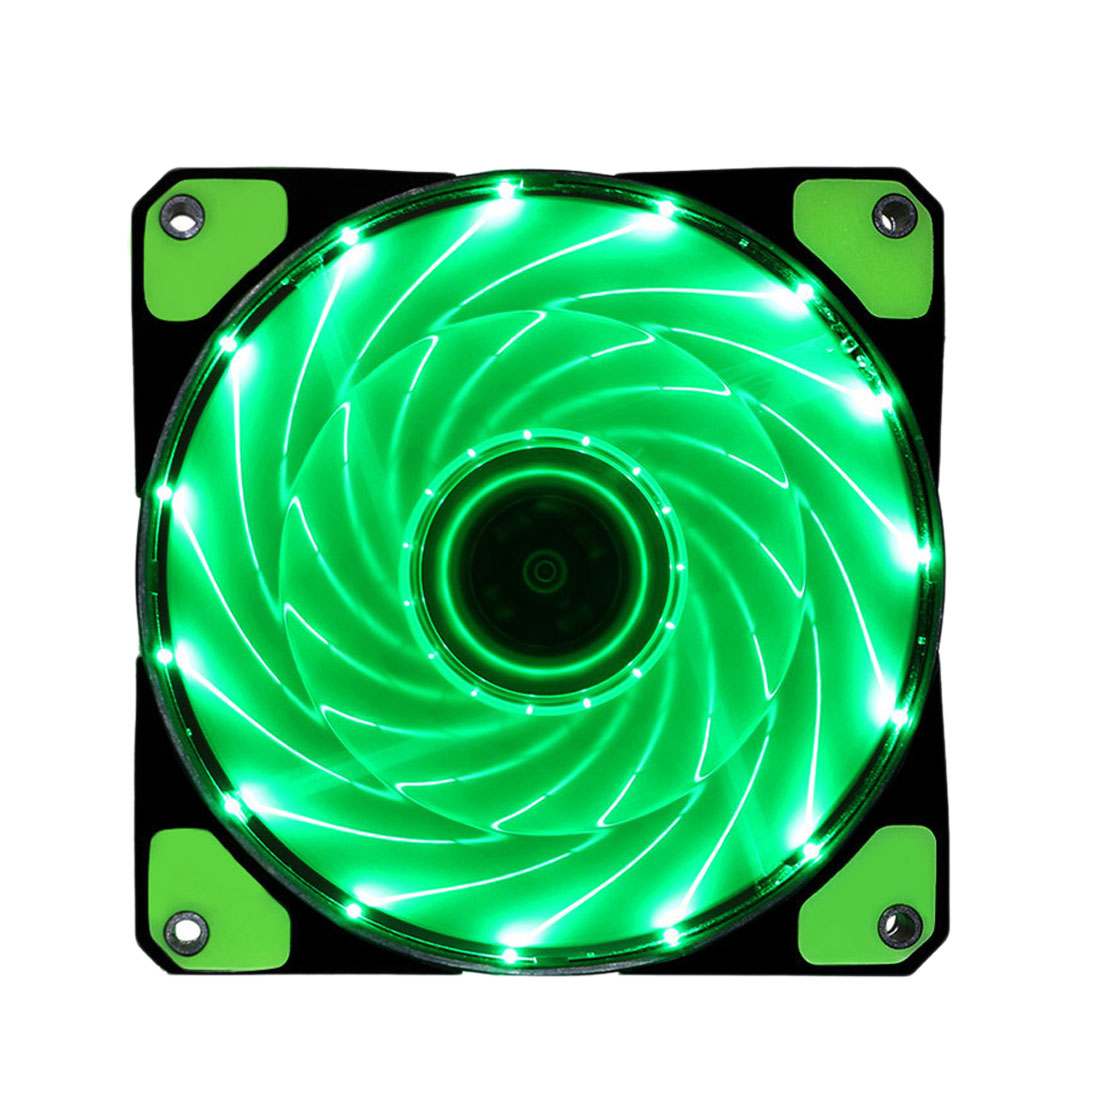 NOYOKERE <font><b>120mm</b></font> LED Ultra Computer Cooler <font><b>Silent</b></font> Computer PC Case <font><b>Fan</b></font> 15 LEDs <font><b>12V</b></font> With Rubber <font><b>Quiet</b></font> Connector Easy Installed <font><b>Fan</b></font> image